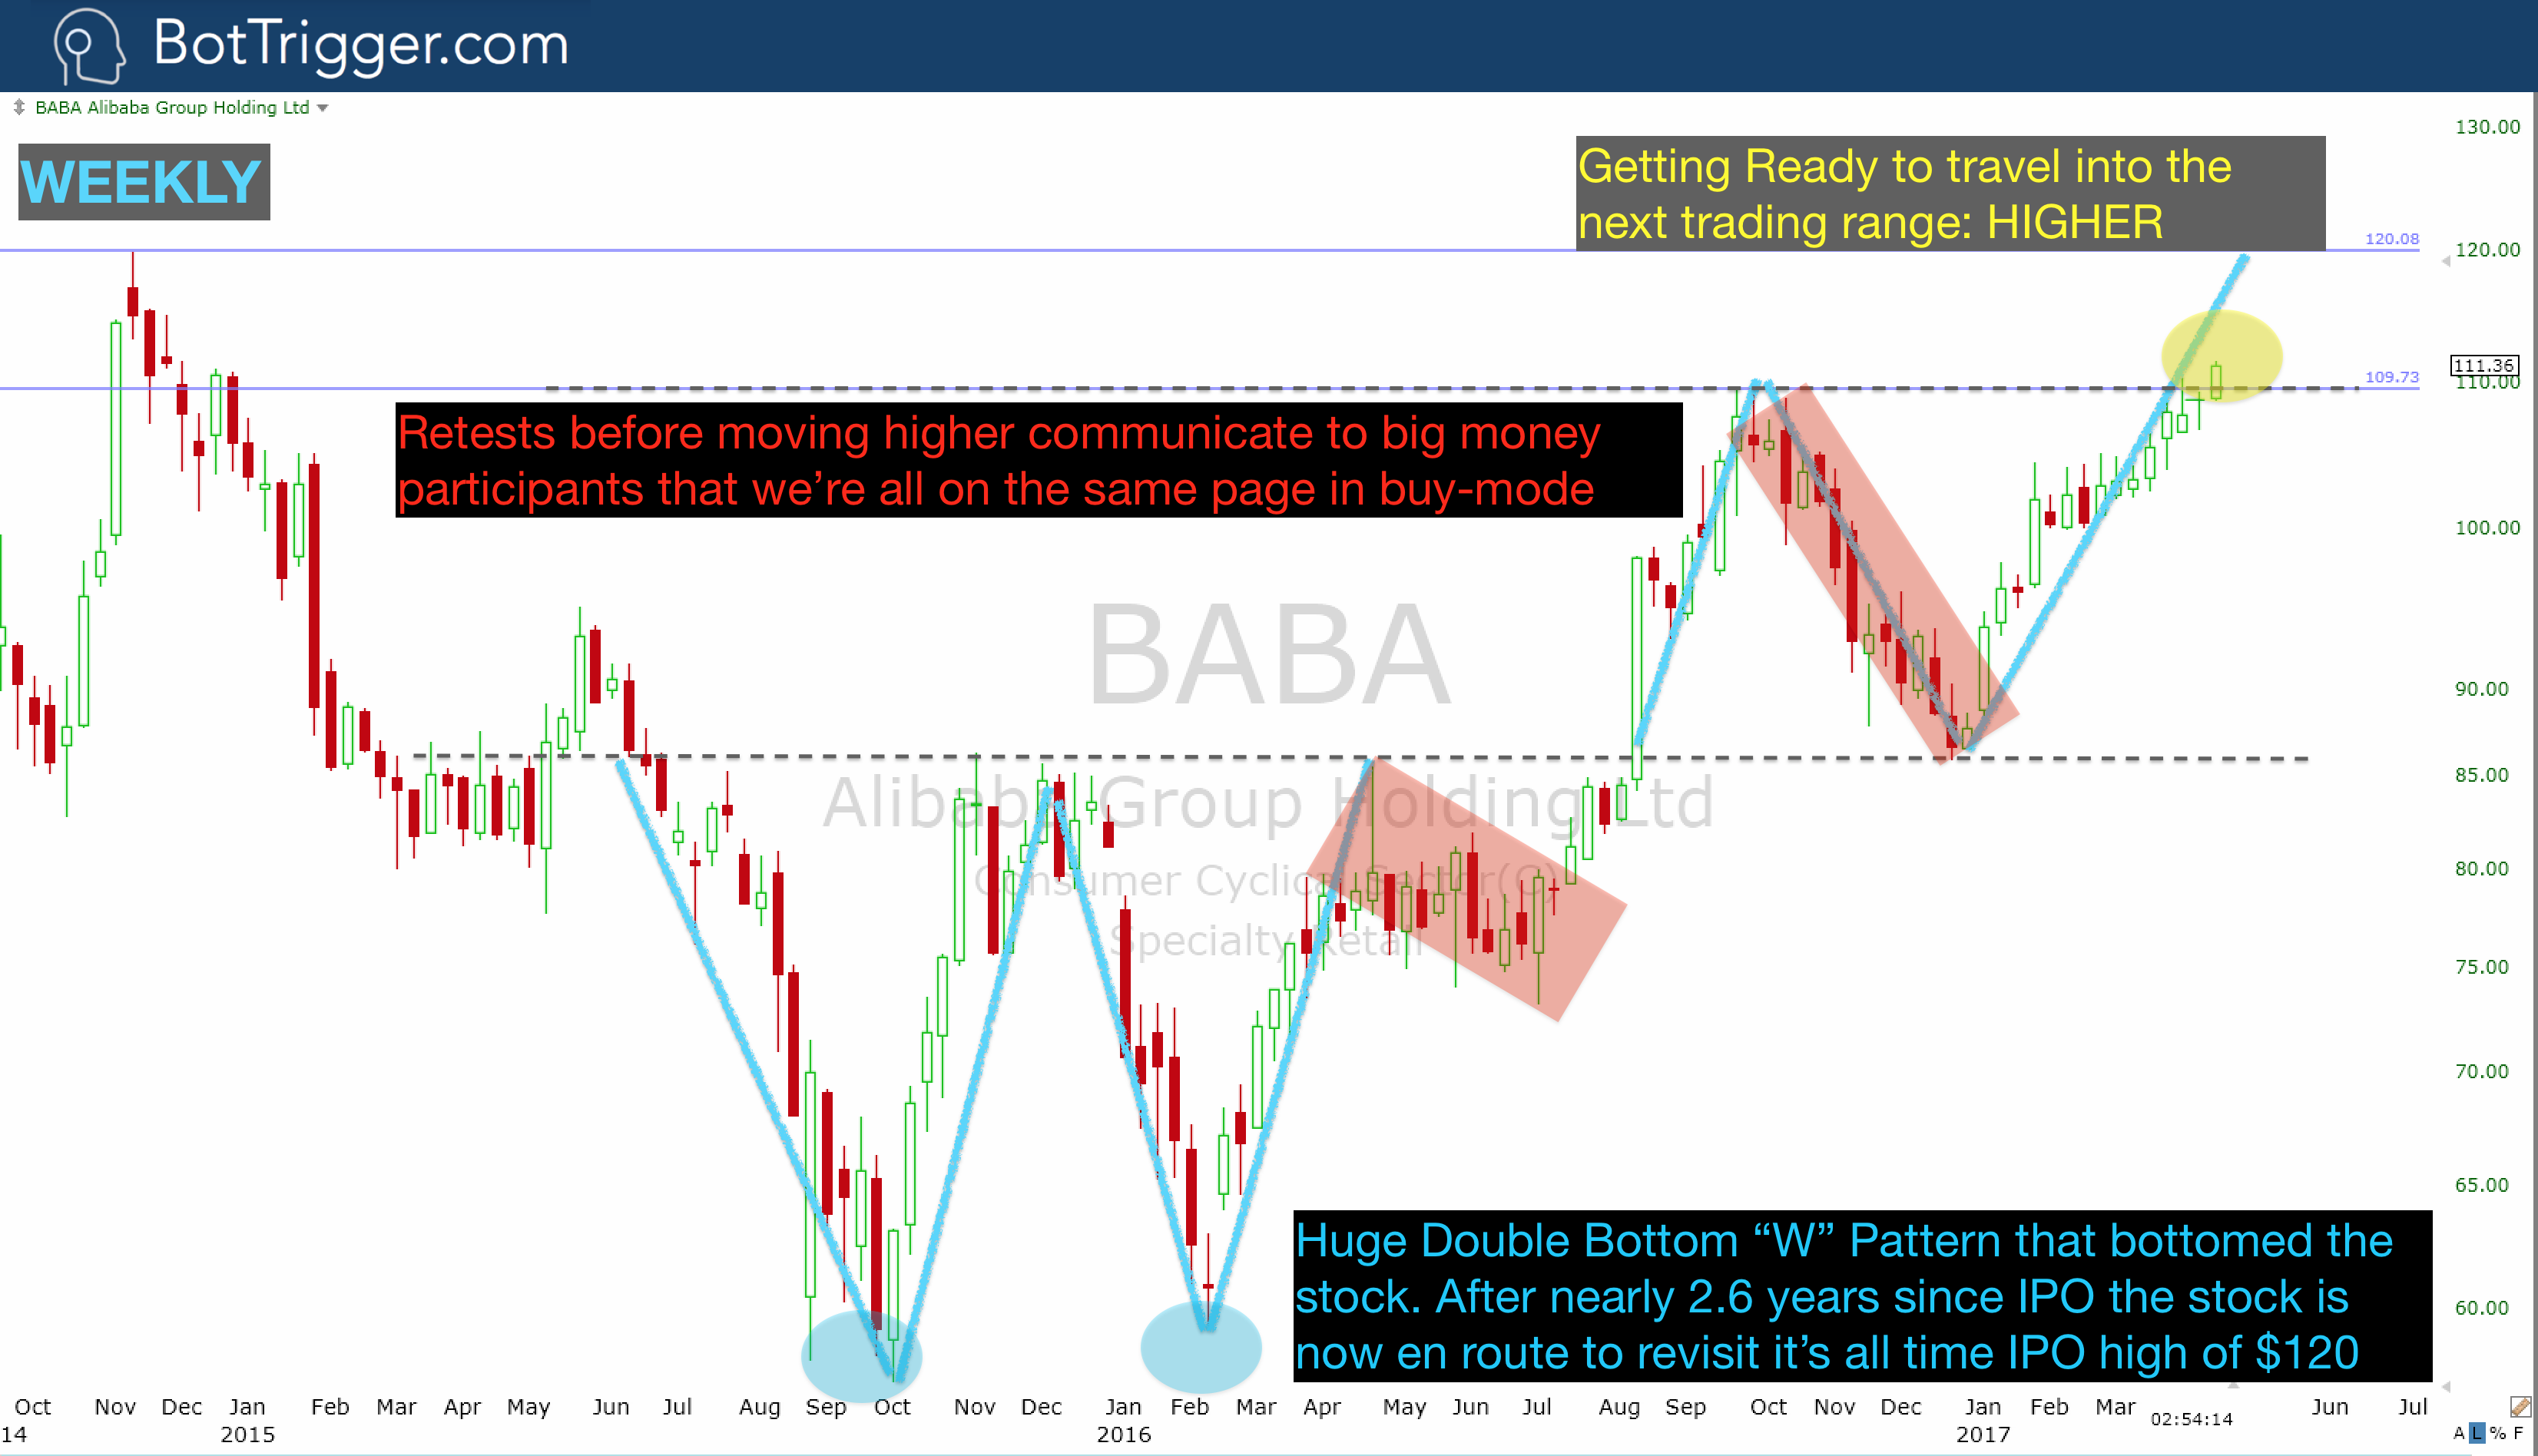 BABA - April 10 Buy Alert